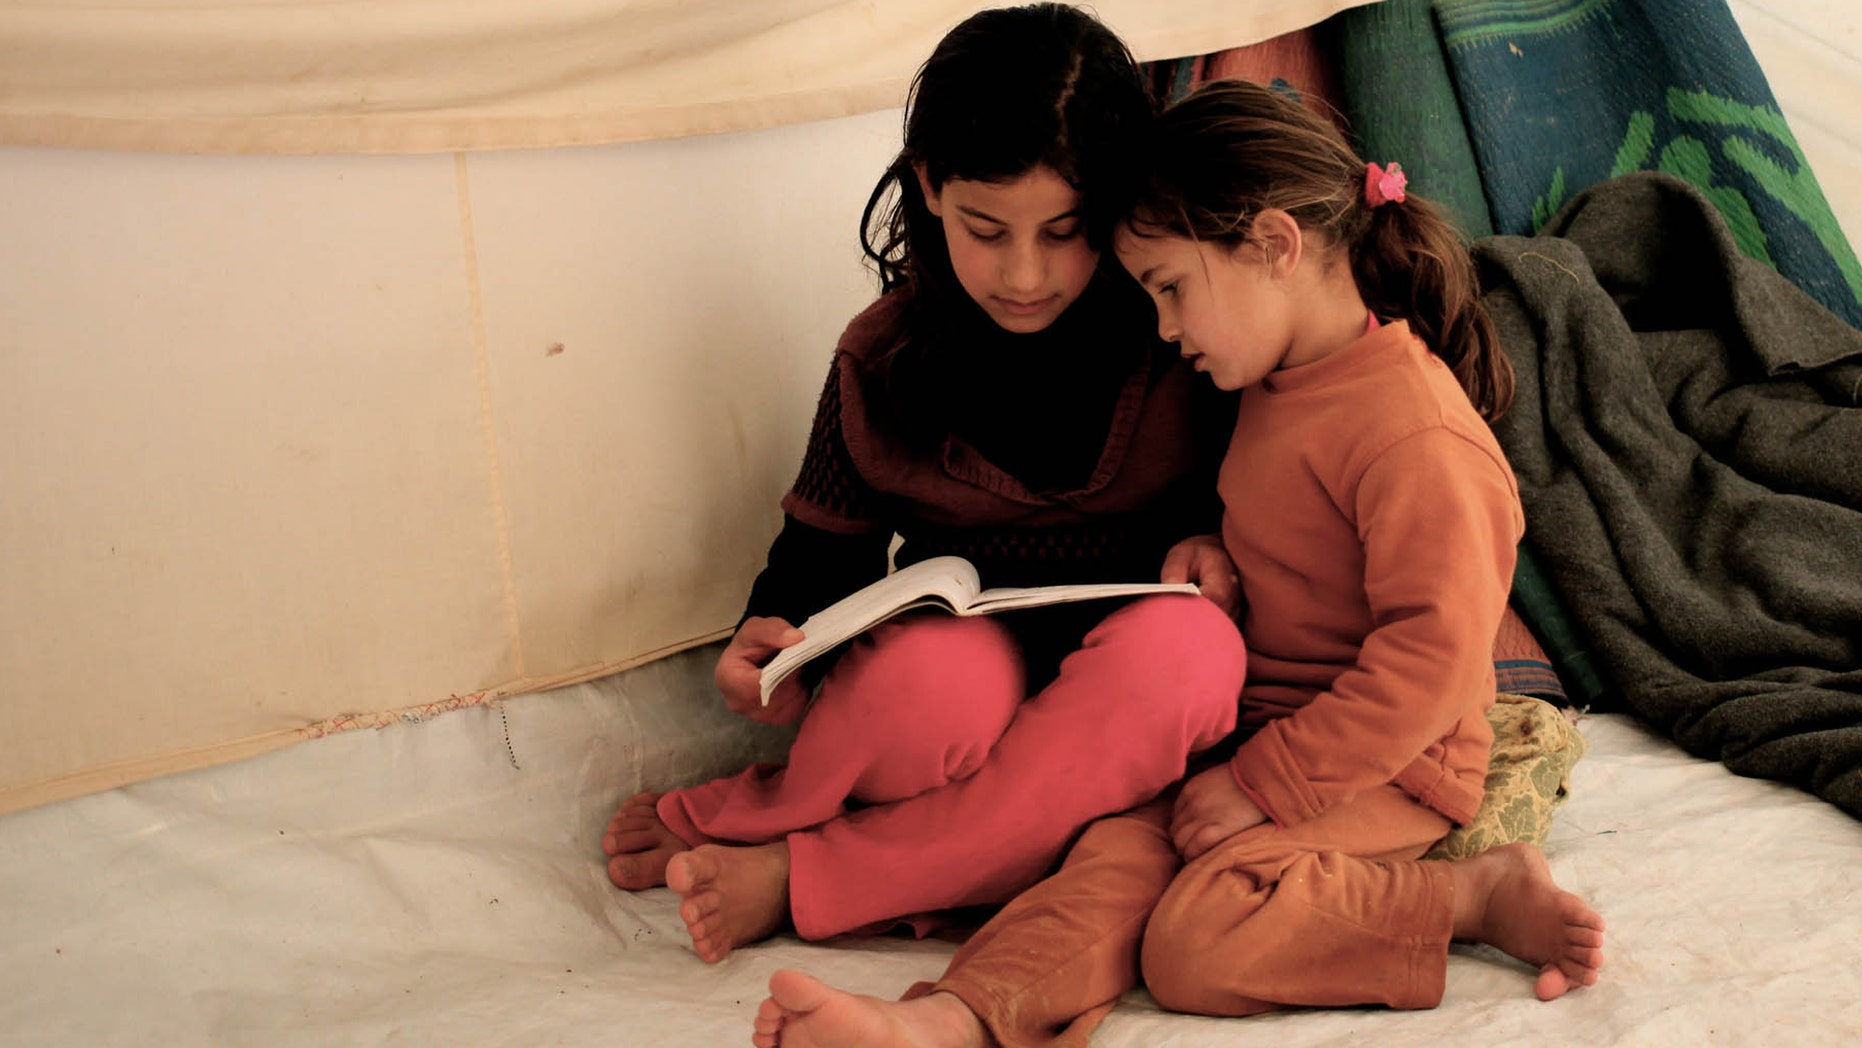 Syrian refugee girls, Fatima Teeme, right, and Sara Teeme, from Homs, read a book inside their tent, as their father Ibraheem Teeme speaks to The Associated Press, at Zaatari refugee camp, near the Syrian border in Mafraq, Jordan, Monday, Dec. 16, 2013. NRC began distributing stoves to Syrian refugees at the Zaatari camp in Jordan on Monday, as bitter winter weather made living conditions worse. (AP Photo/Mohammad Hannon)